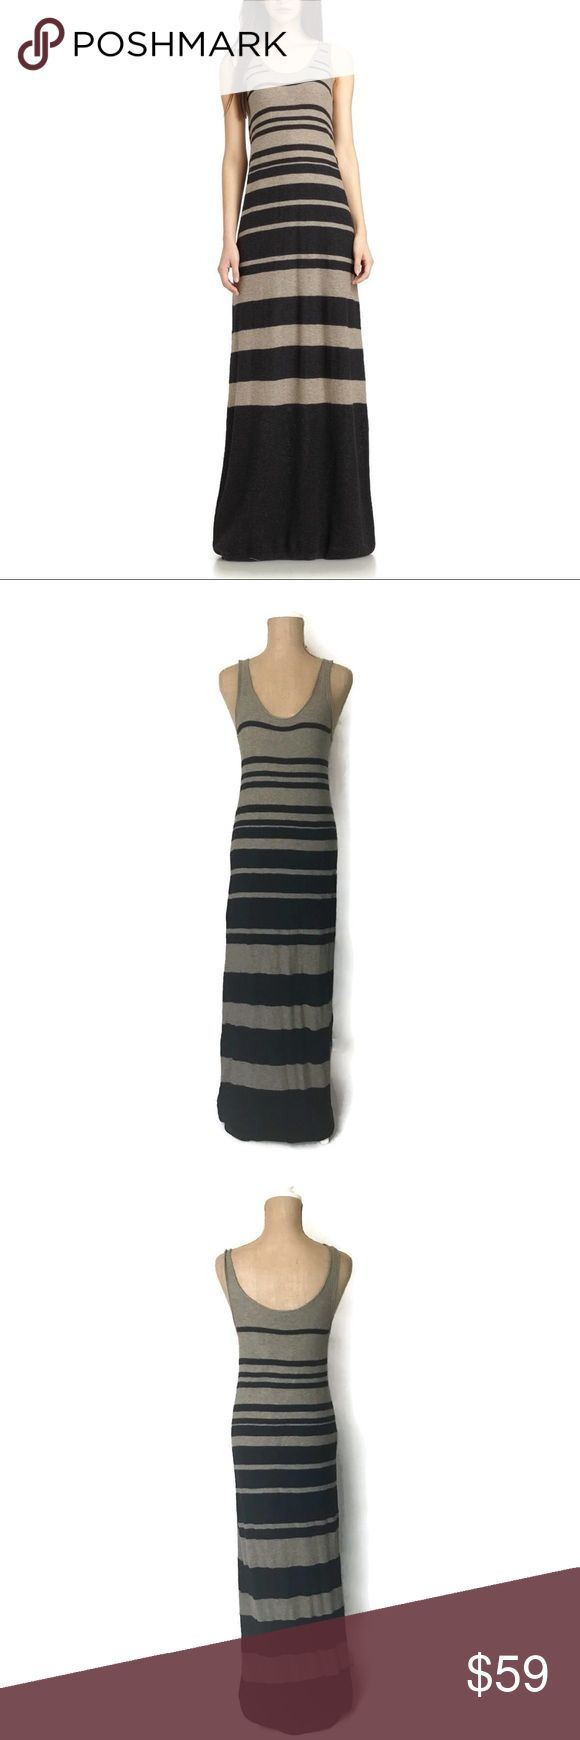 Vince Striped Sleeveless Extra Long Maxi Dress Info:Vince Extra Long Maxi Dress M Beige Black Striped Sleeveless Cotton Shift - Condition: Pre-owned. - Tag Size: M  *** Please see measurements below - Material: 100% Cotton - Care: Hand Wash - Flat Measurements (unstretched) Bust (armpit to armpit) - 16 inches (Size 32) Length - 67 inches - *** Any known defects (i.e. rips, stains..etc) - if present - on an item will be disclosed under item condition and highlighted in the listing…